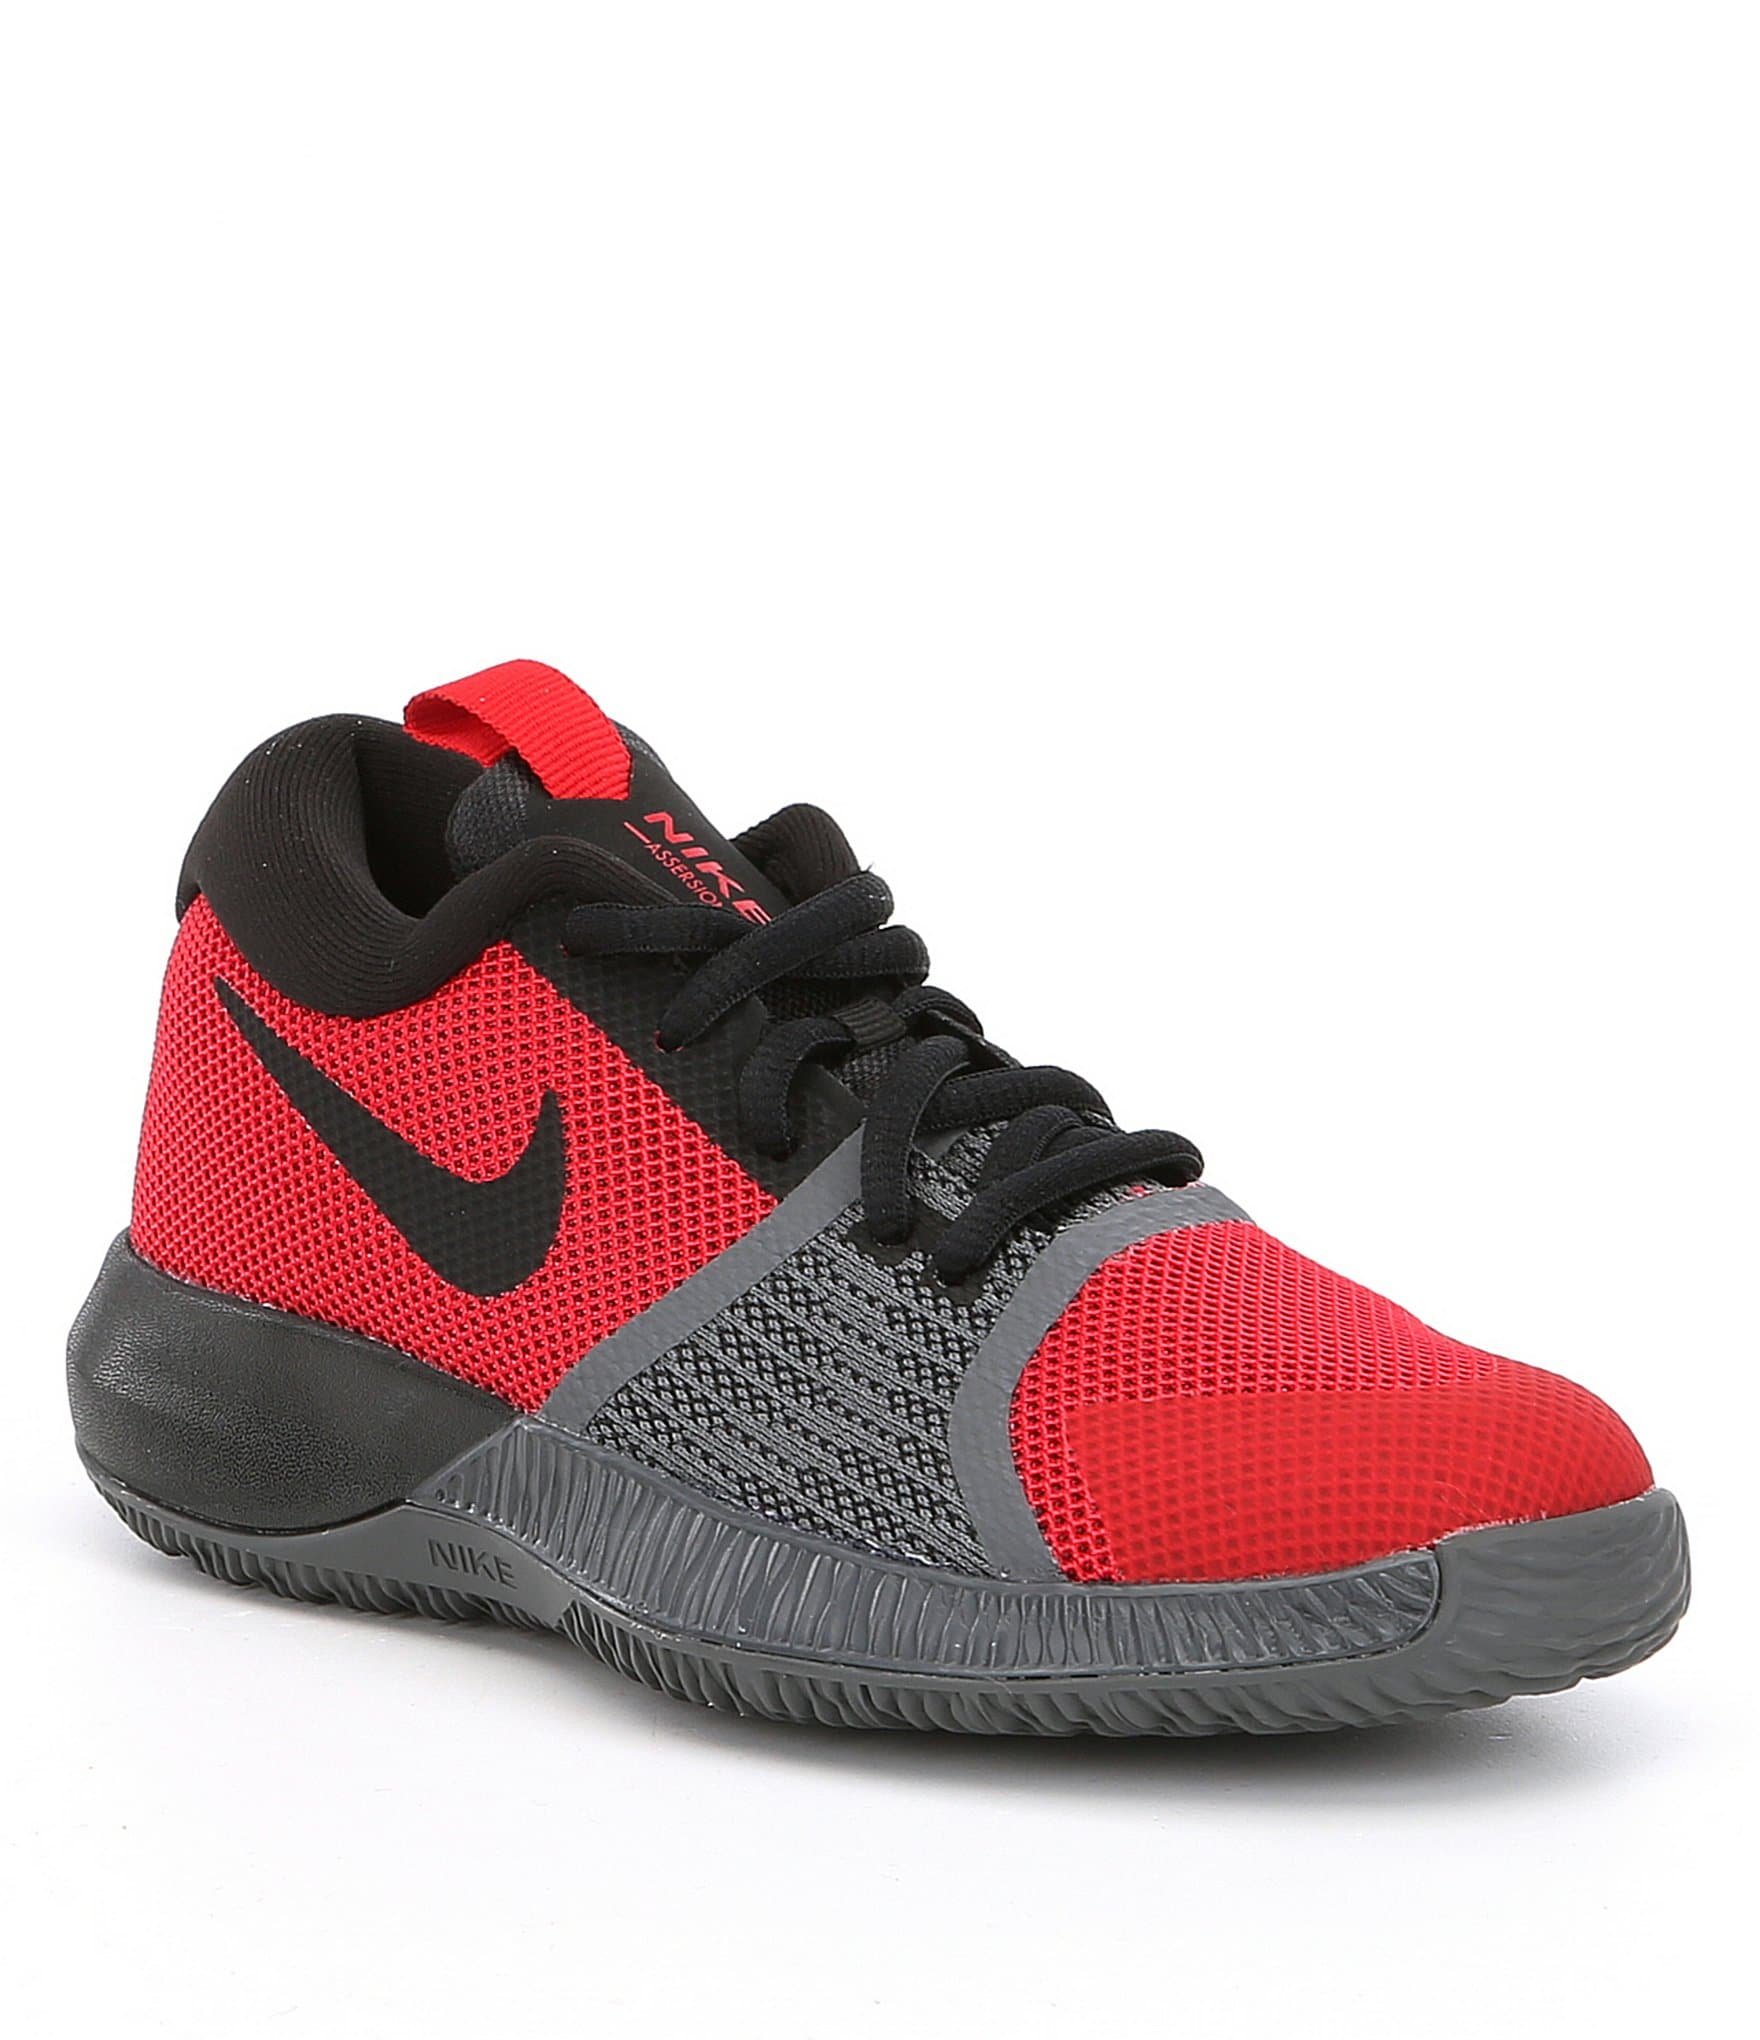 Brand Black Basketball Shoes Review